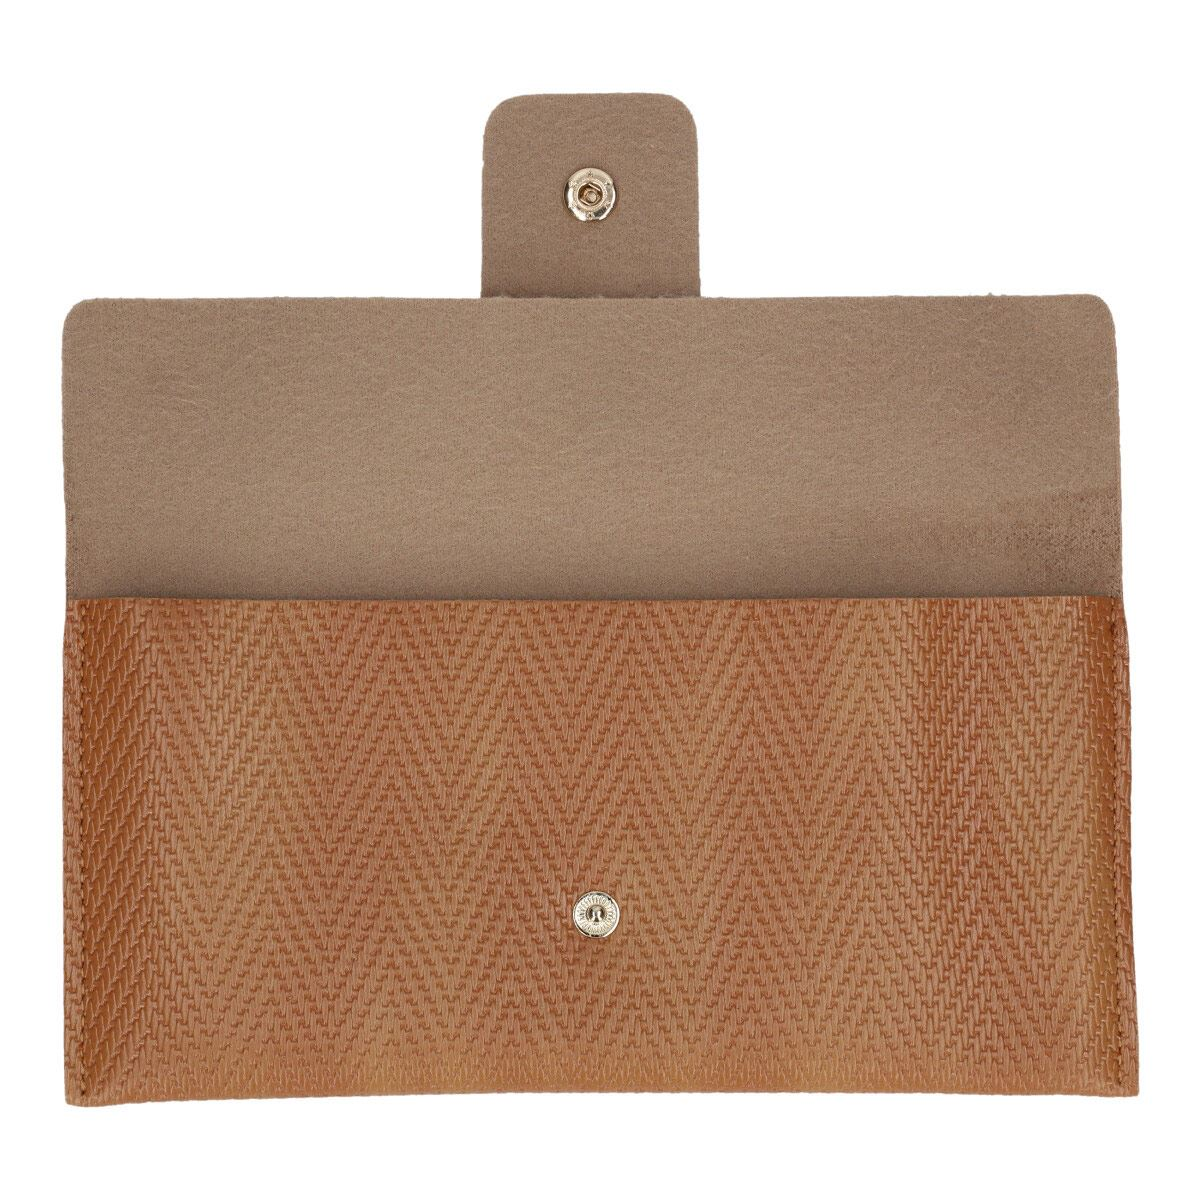 Cartera Tipo Piel Phi By Philosophy Jr. Beige